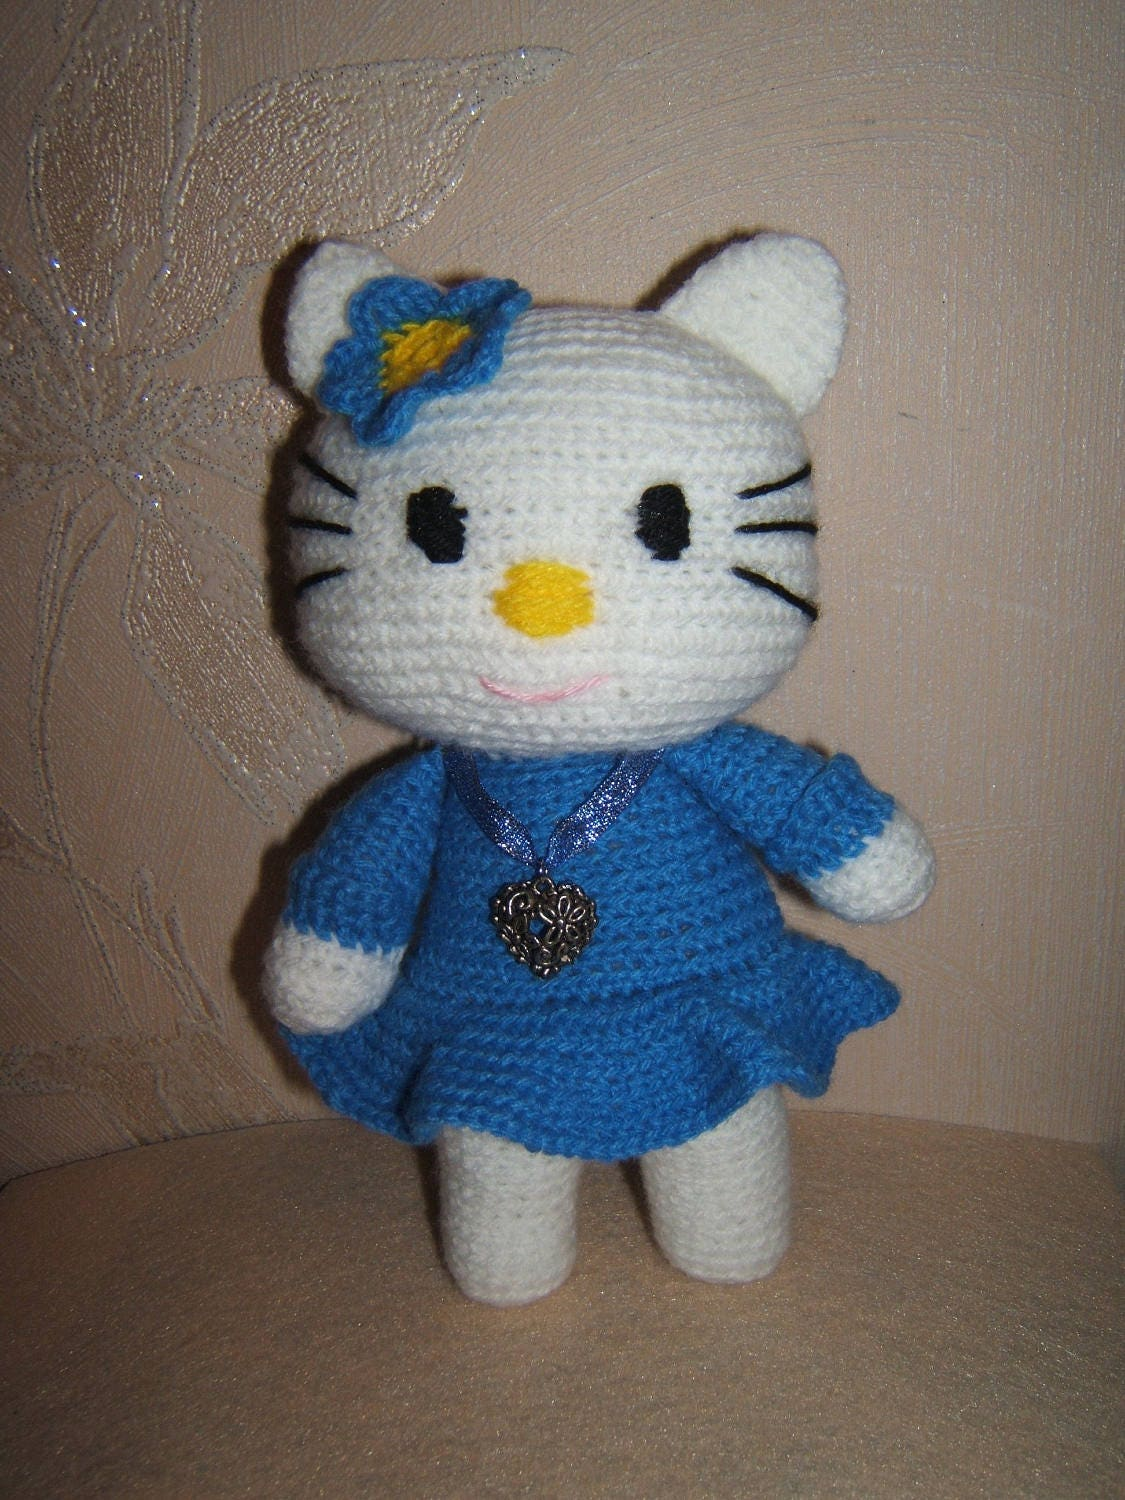 Hello Kitty a toy crocheted. Amigurumi Doll. Handmade. Gift